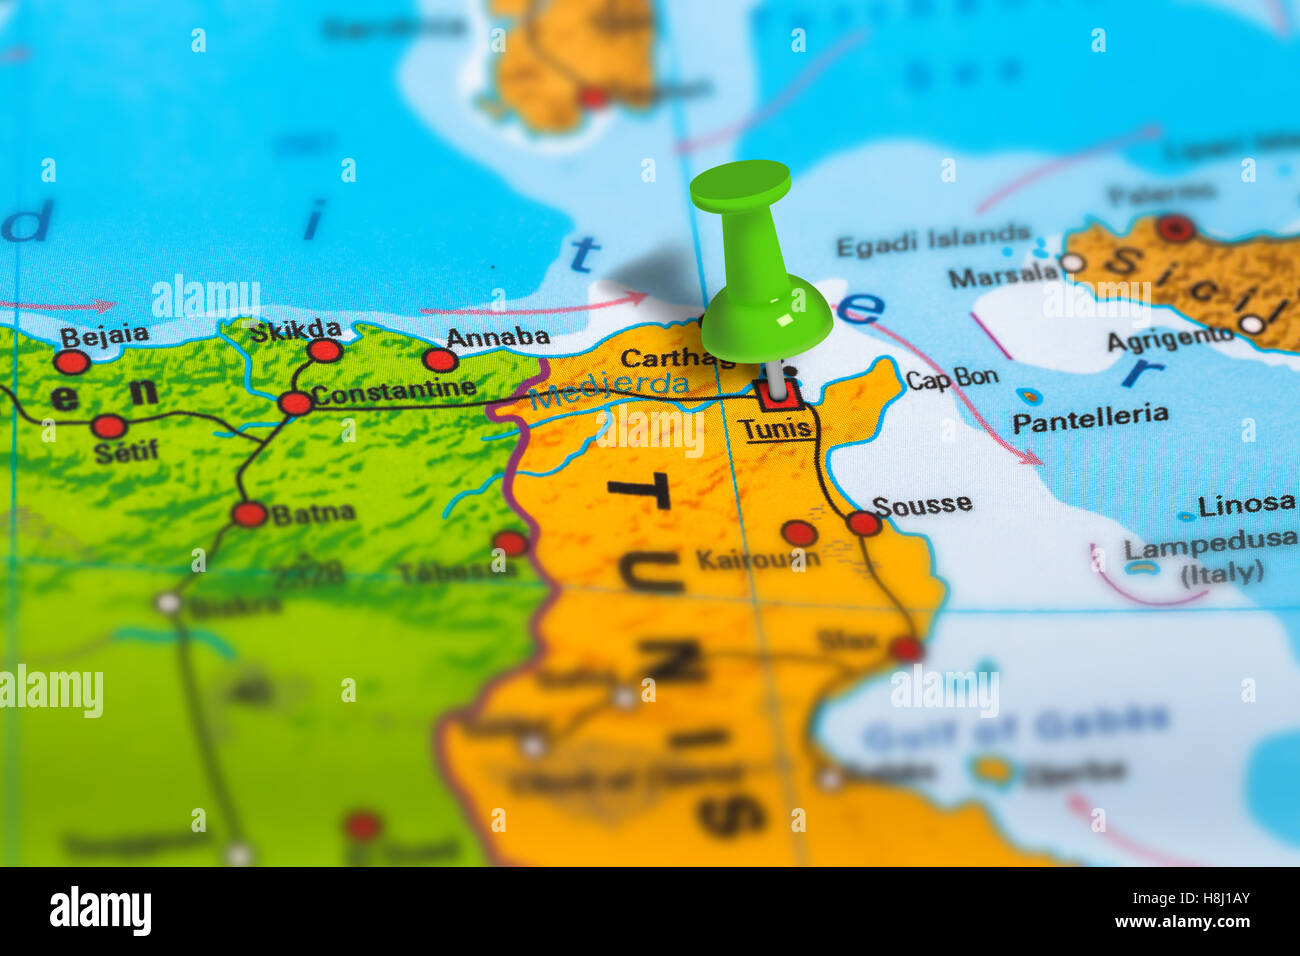 Tunis Tunisia map Stock Photo 125786051 Alamy